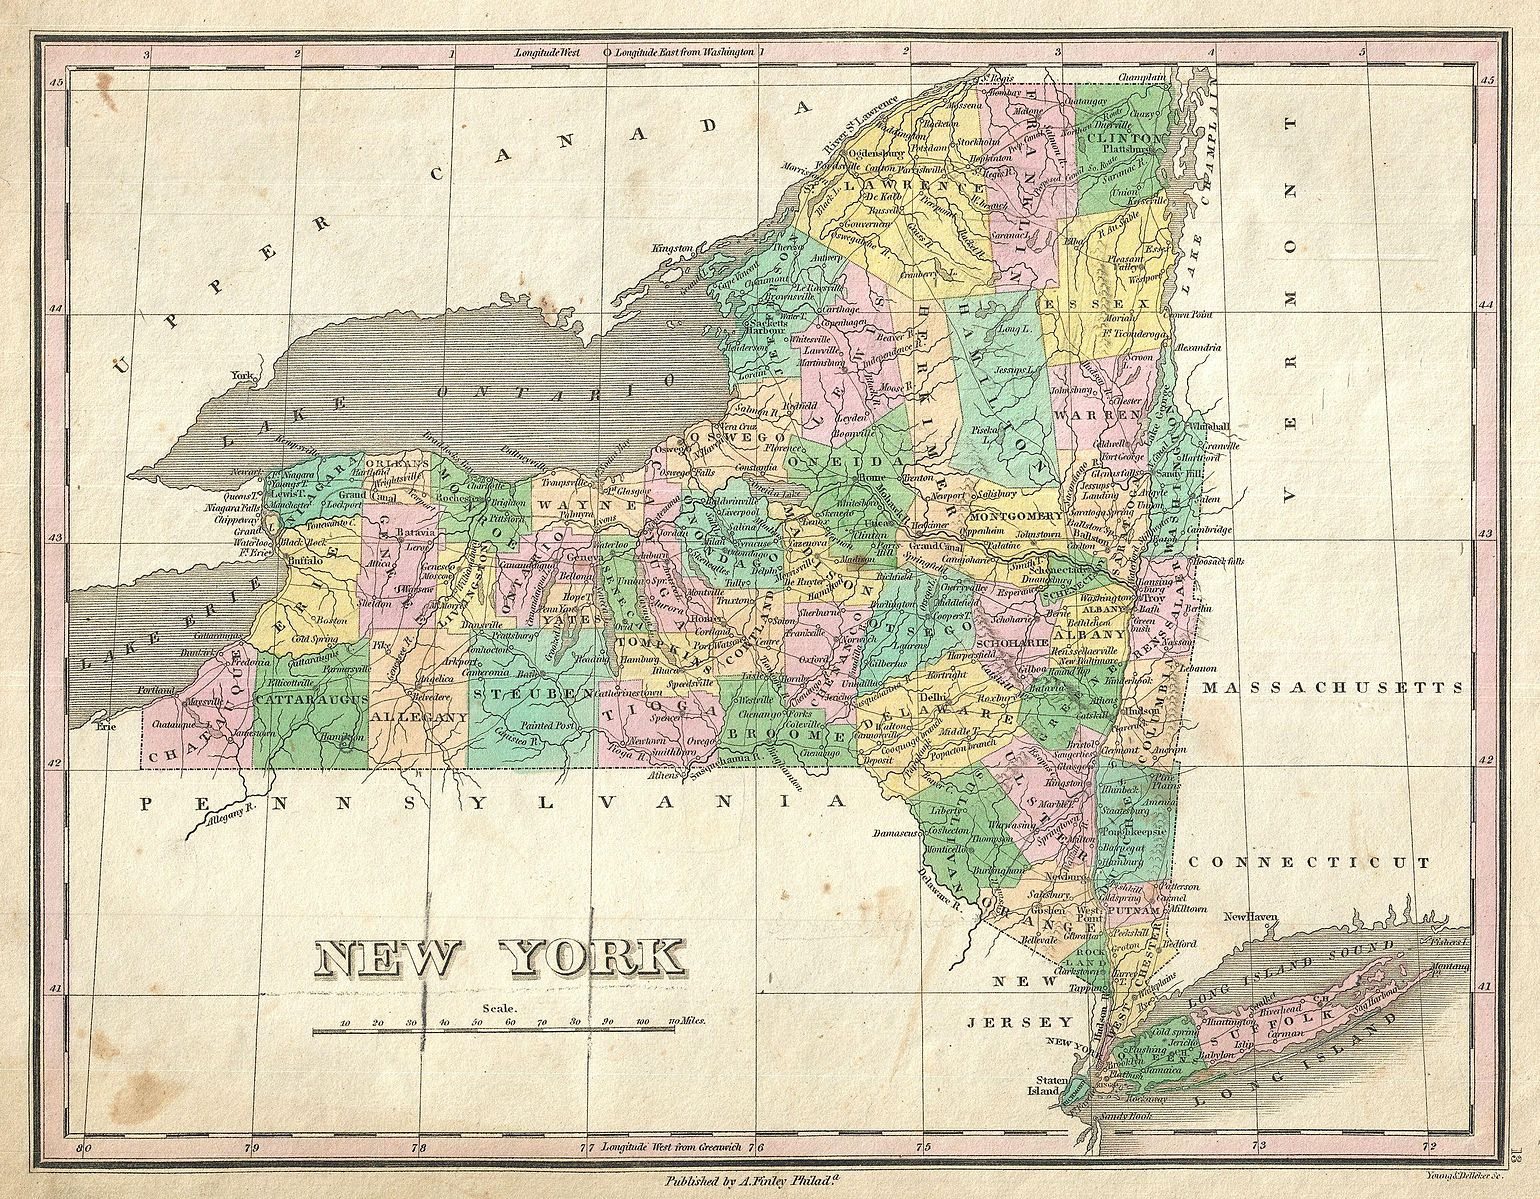 1827 Map of New York state